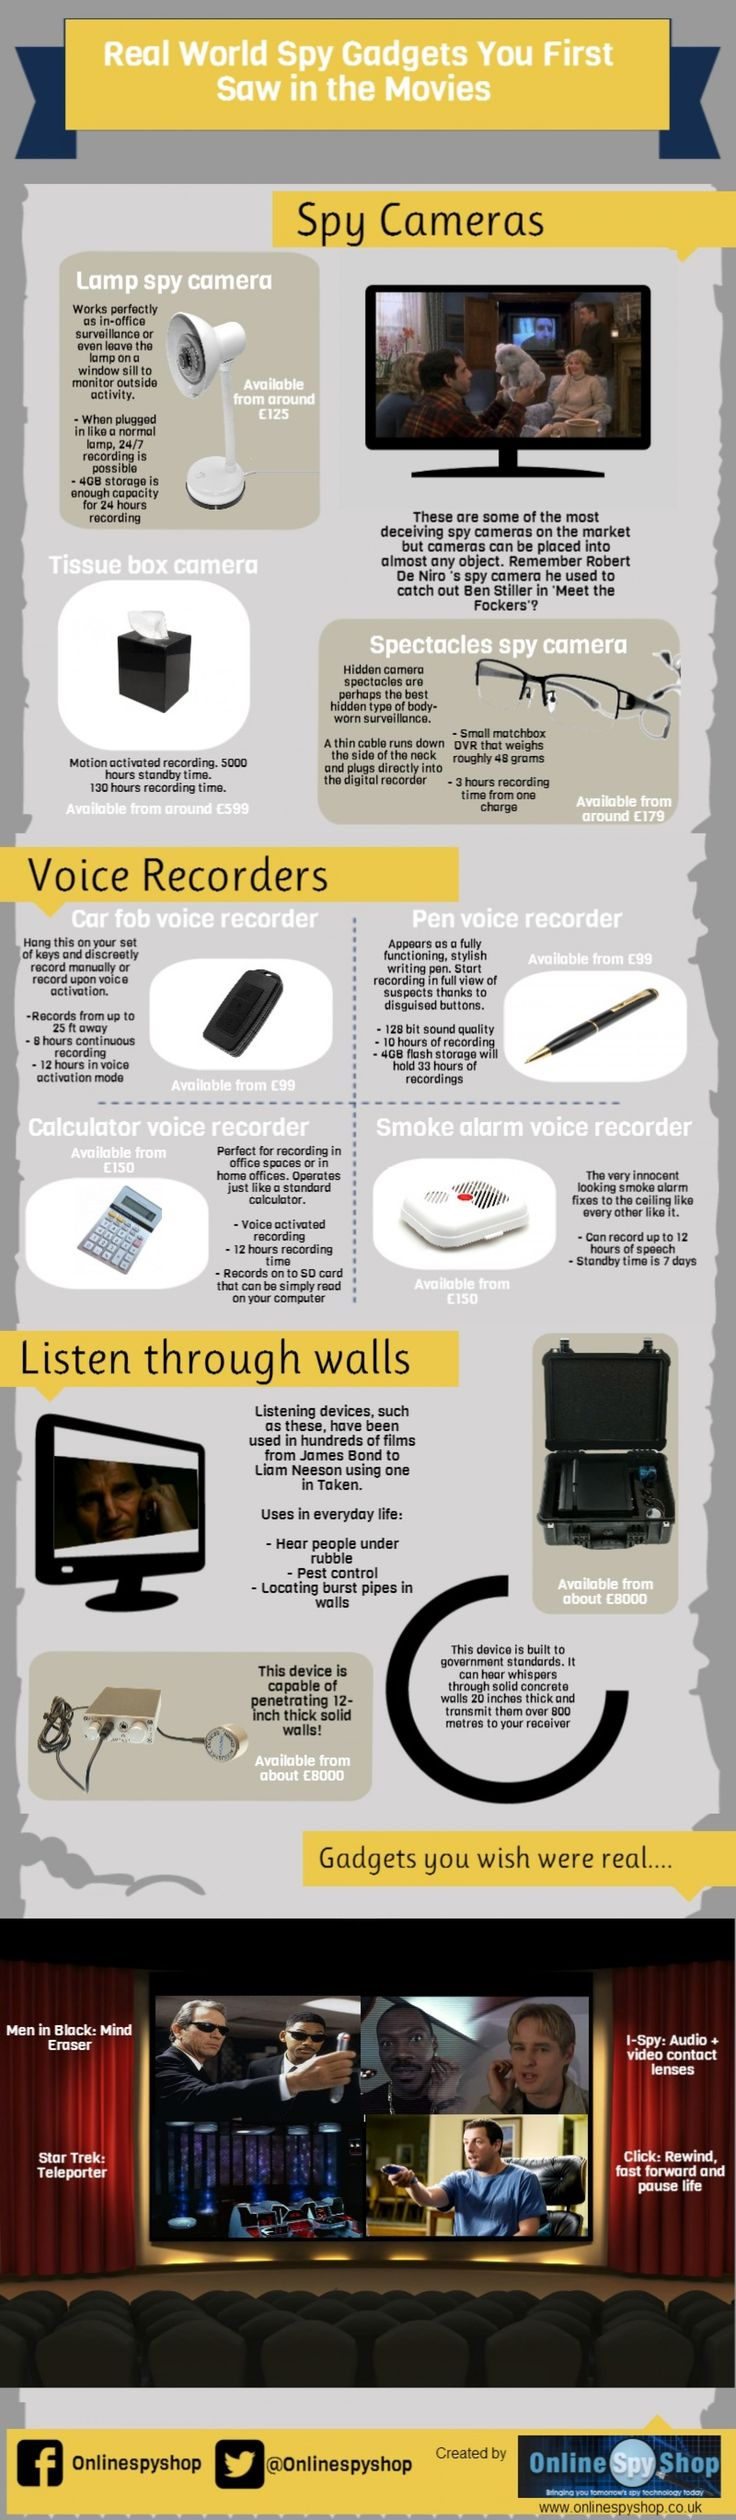 Real World Spy Gadgets You First Saw in the Movies Infographic